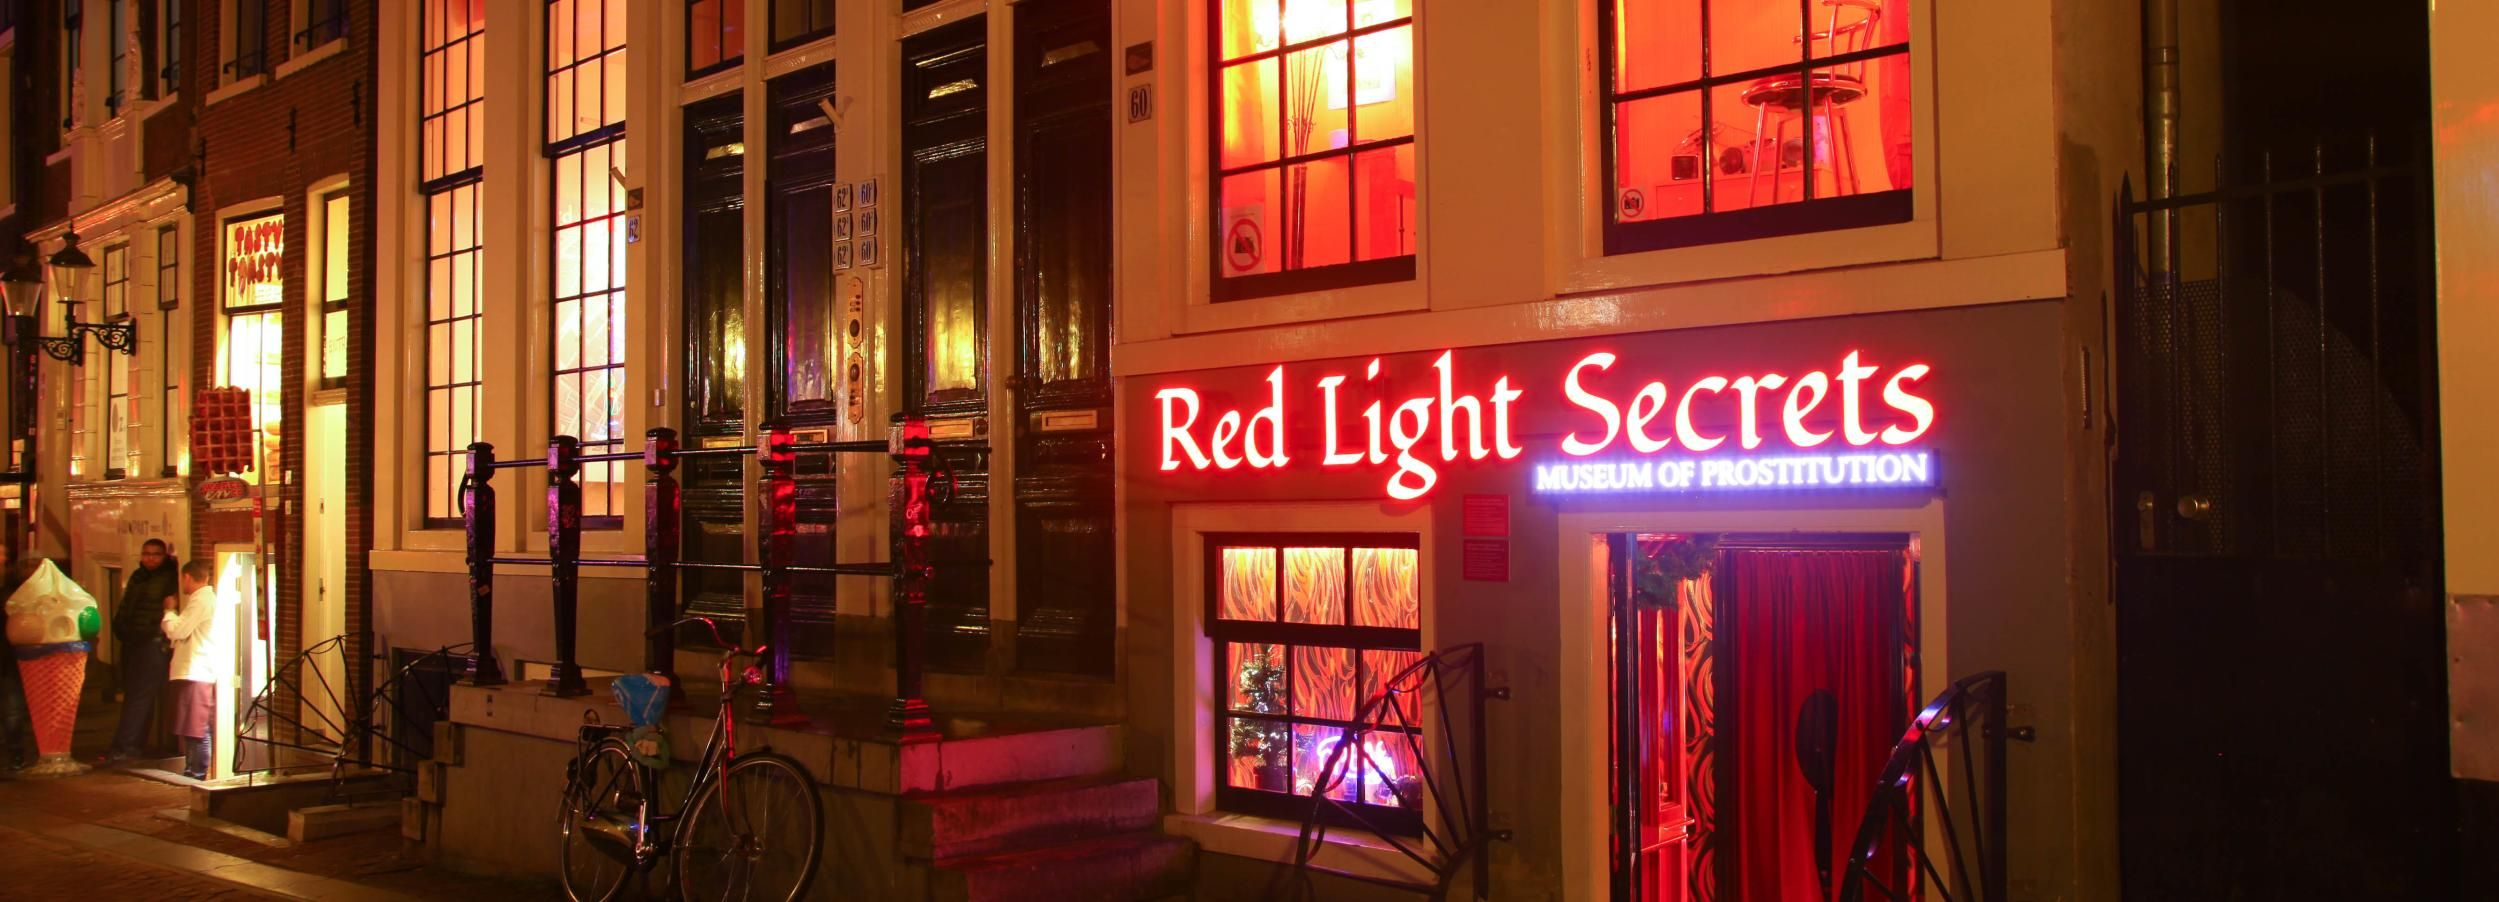 Red Light Secrets Museum of Prostitution Entry Ticket